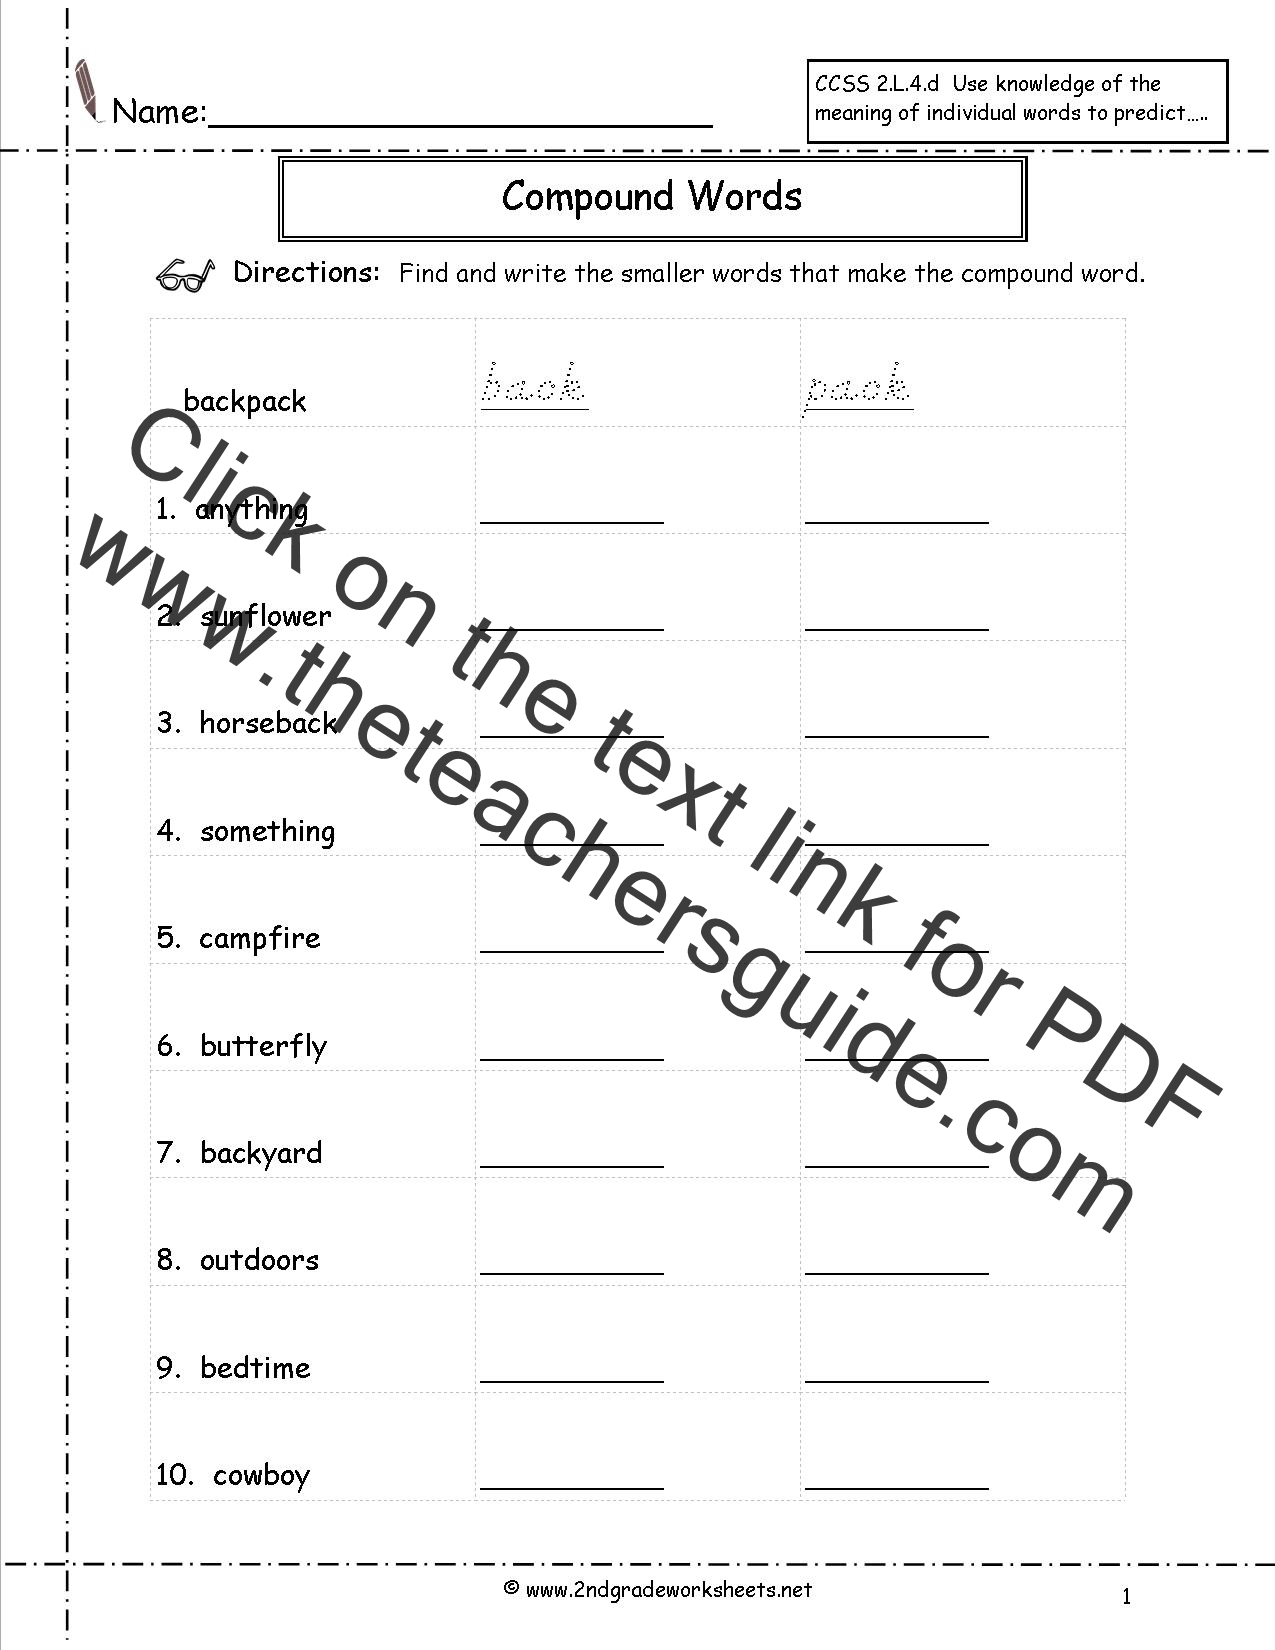 Worksheets 2nd Grade Worksheets Printable free languagegrammar worksheets and printouts compound words worksheets